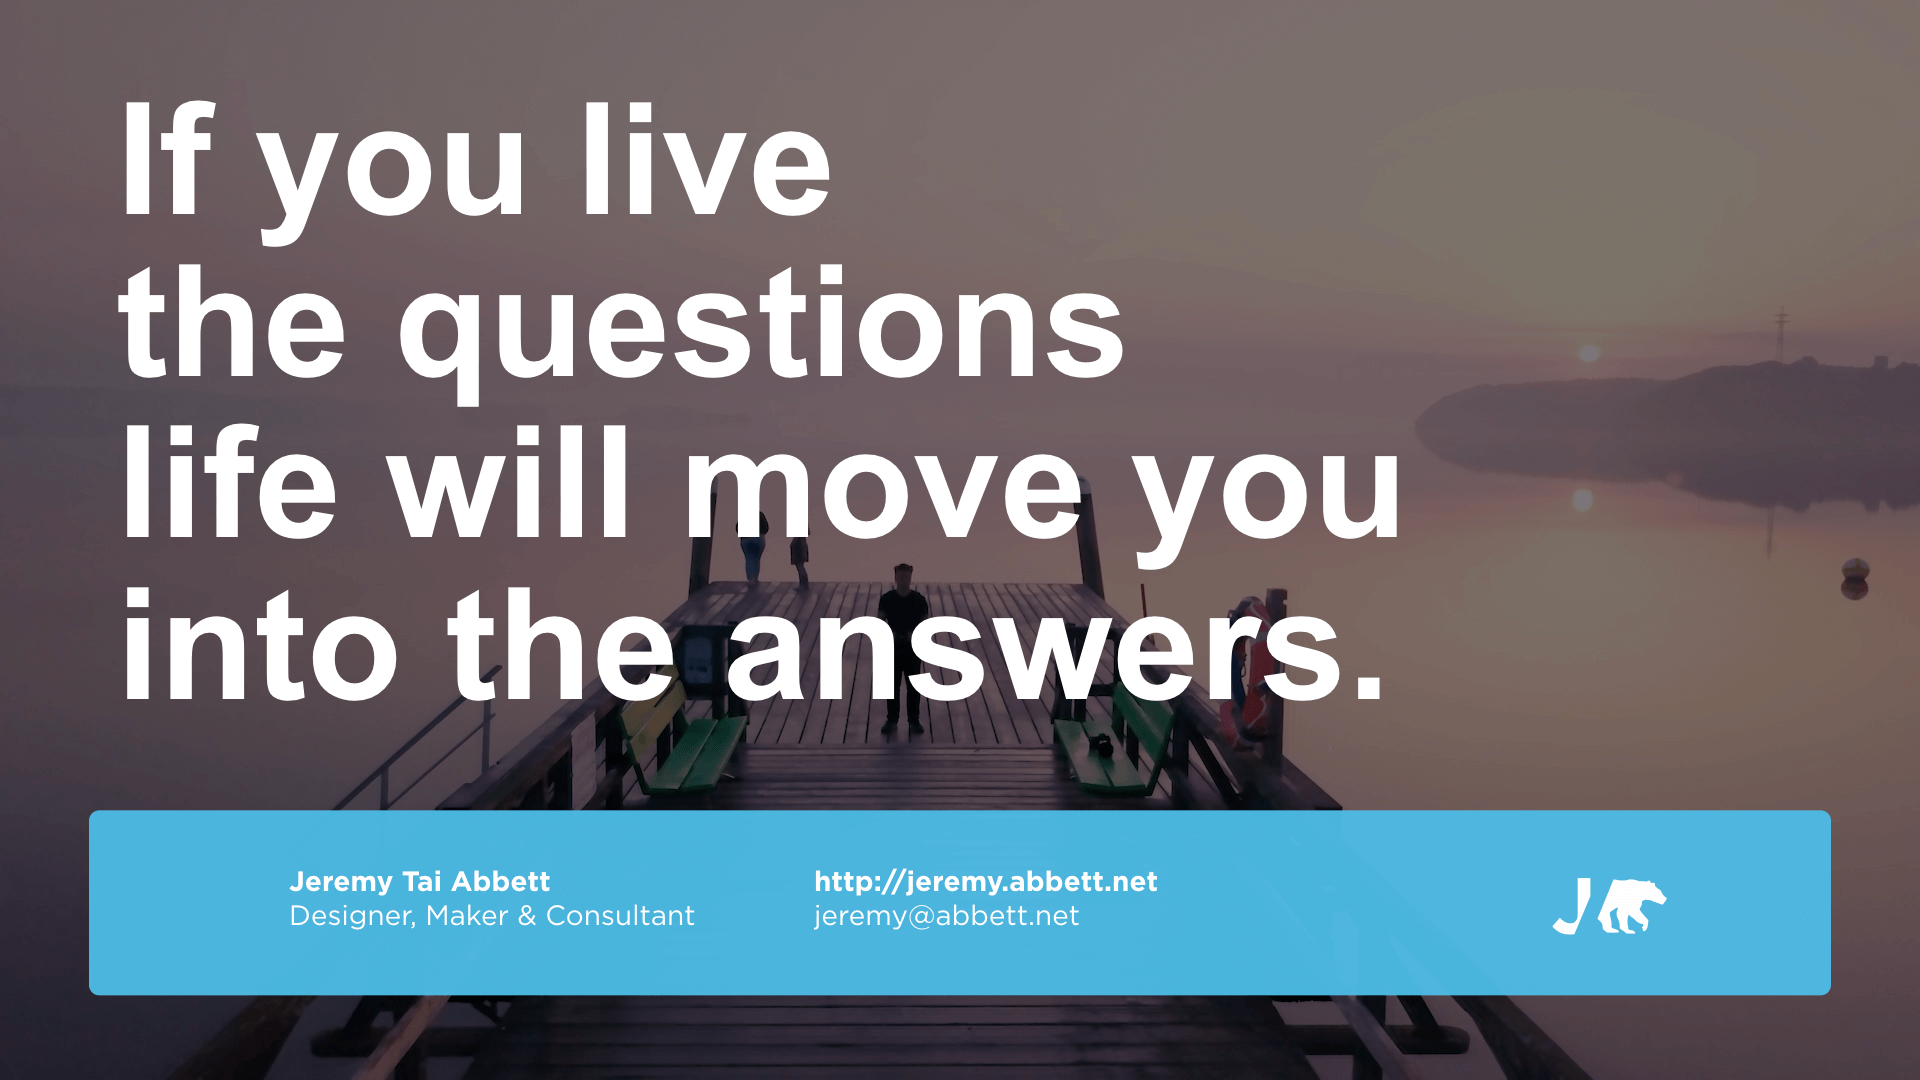 If you live the questions life will move you into the answers